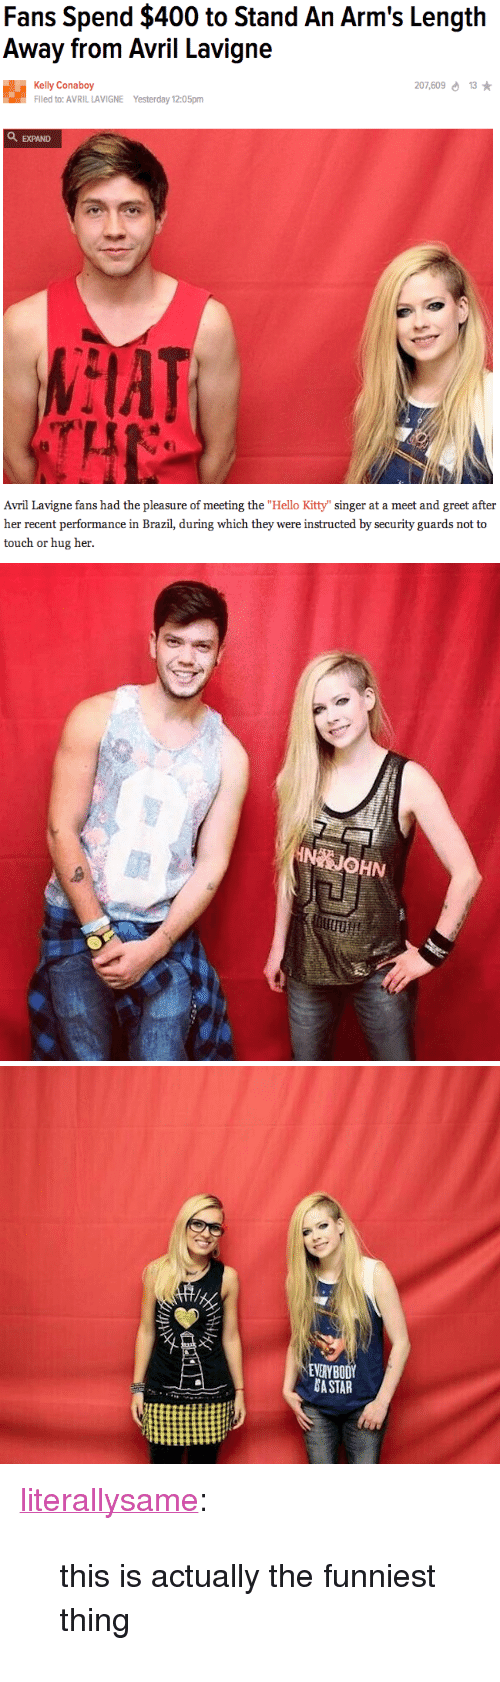 "Hello, Target, and Tumblr: Fans Spend $400 to Stand An Arm's Length  Away from Avril Lavigne  07,609d13  Kelly Conaboy  Flled to: AVRIL LAVIGNE  Yesterday 12:05pm  EXPAND   Avril Lavigne fans had the pleasure of meeting the ""Hello Kitty"" singer at a meet and greet after  her recent performance in Brazil, during which they were instructed by security guards not to  touch or hug her.   IN JOHN   EVERYBOD  A STAR <p><a class=""tumblr_blog"" href=""http://literallysa.me/post/84733498849/this-is-actually-the-funniest-thing"" target=""_blank"">literallysame</a>:</p> <blockquote> <p>this is actually the funniest thing</p> </blockquote>"